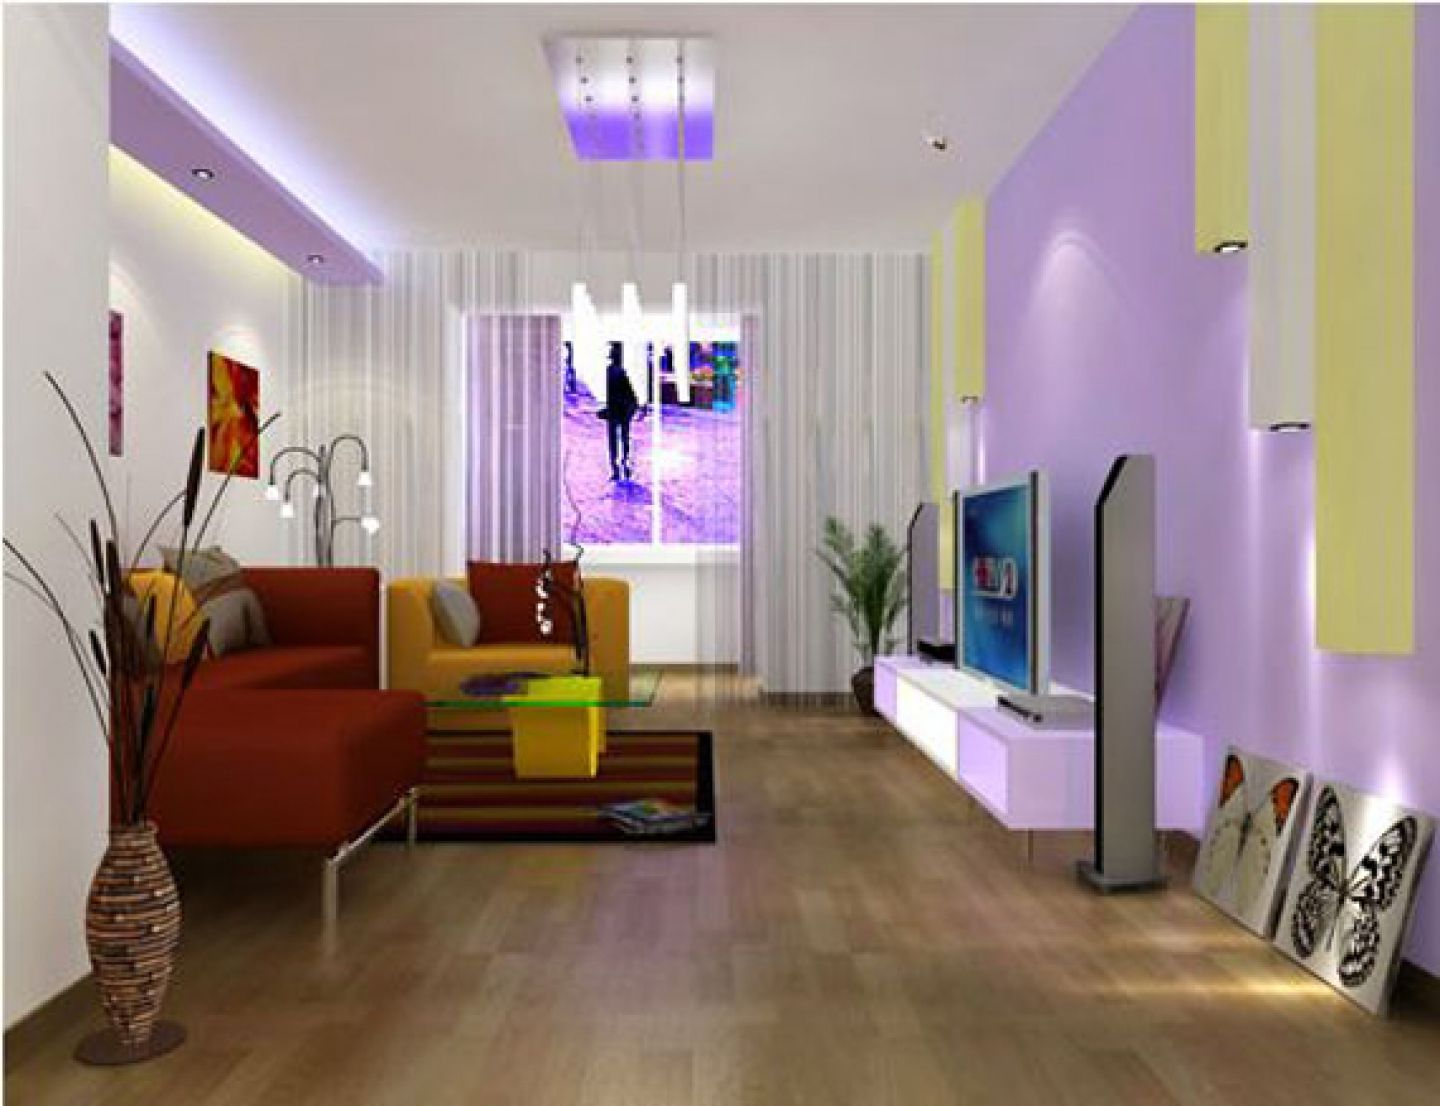 Small Home Decorating Ideas Photos home wall lighting design home design ideas. bedroom designs